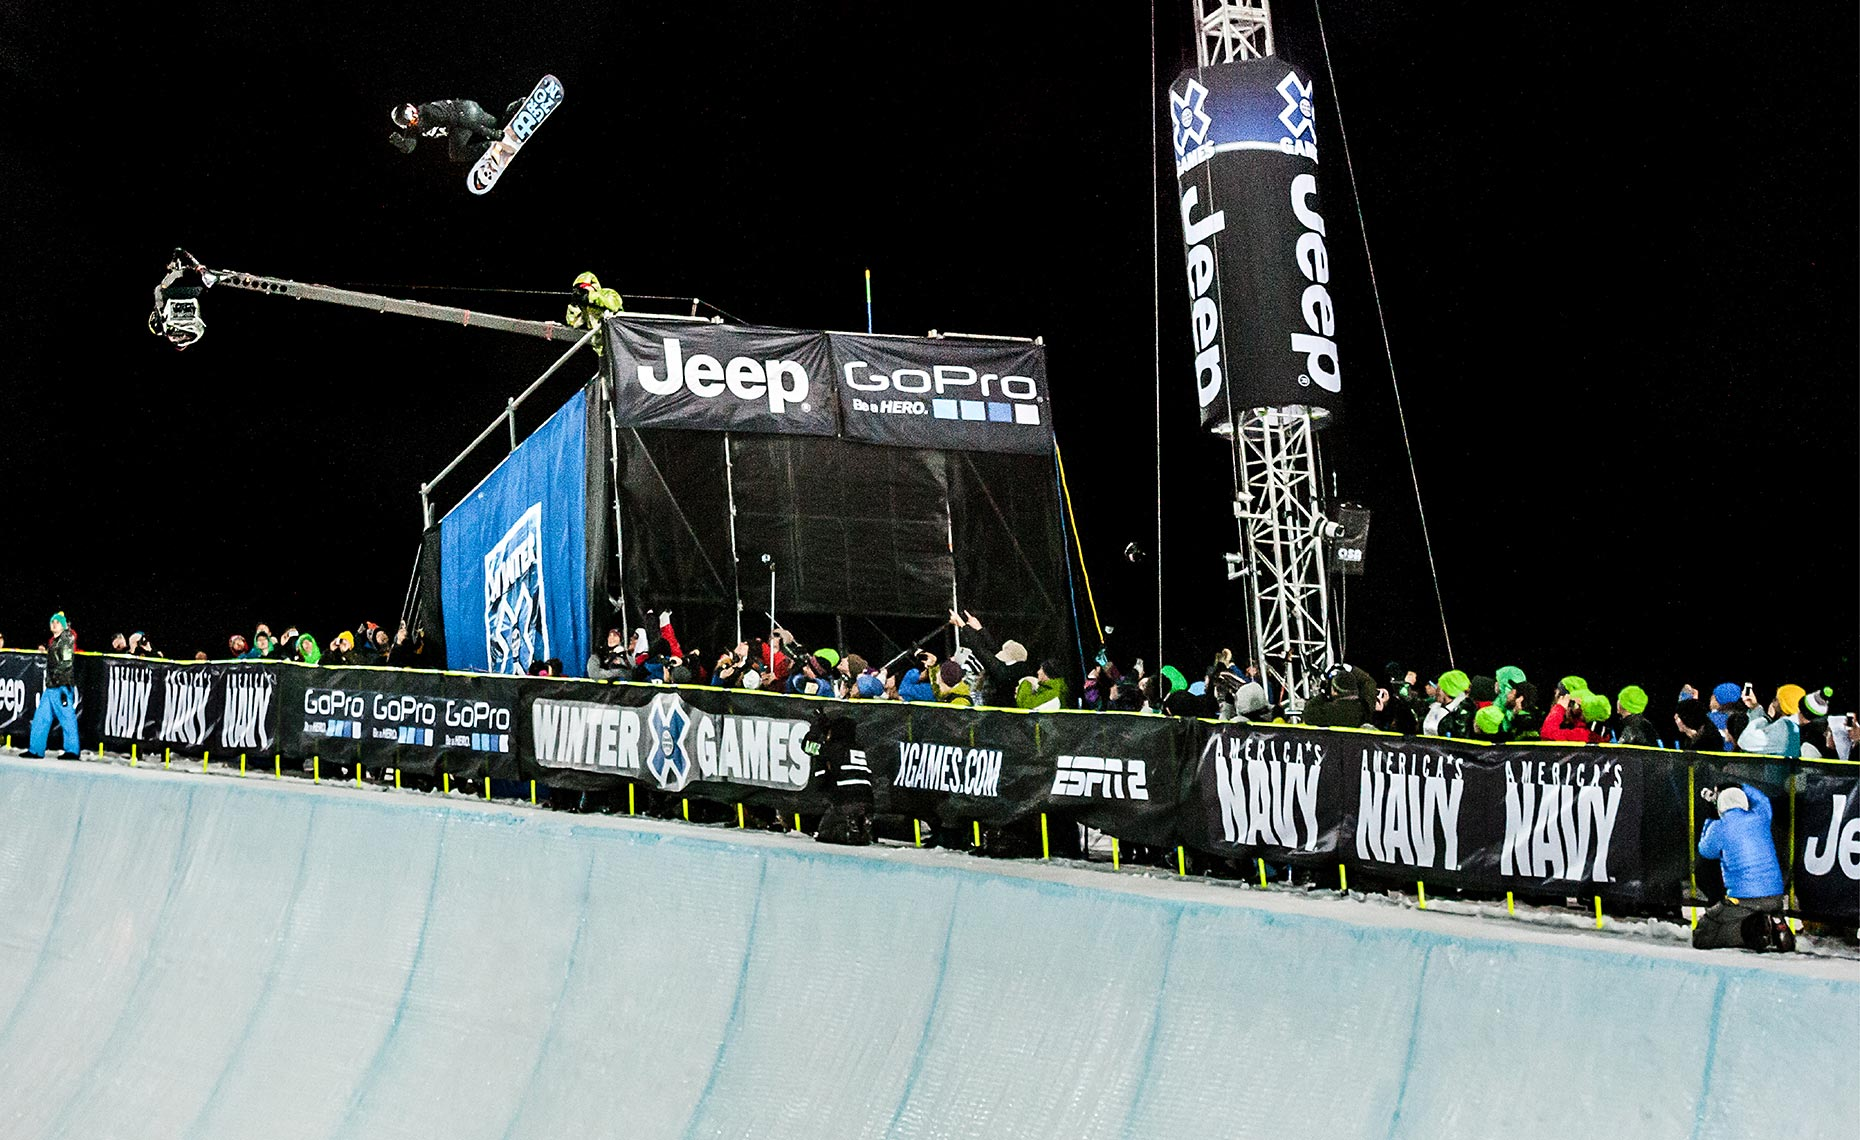 16_Shaun_White_Winter_X_Games_Aspen_Colorado_Snowboarding_Chris_Wellhausen_Photography.JPG